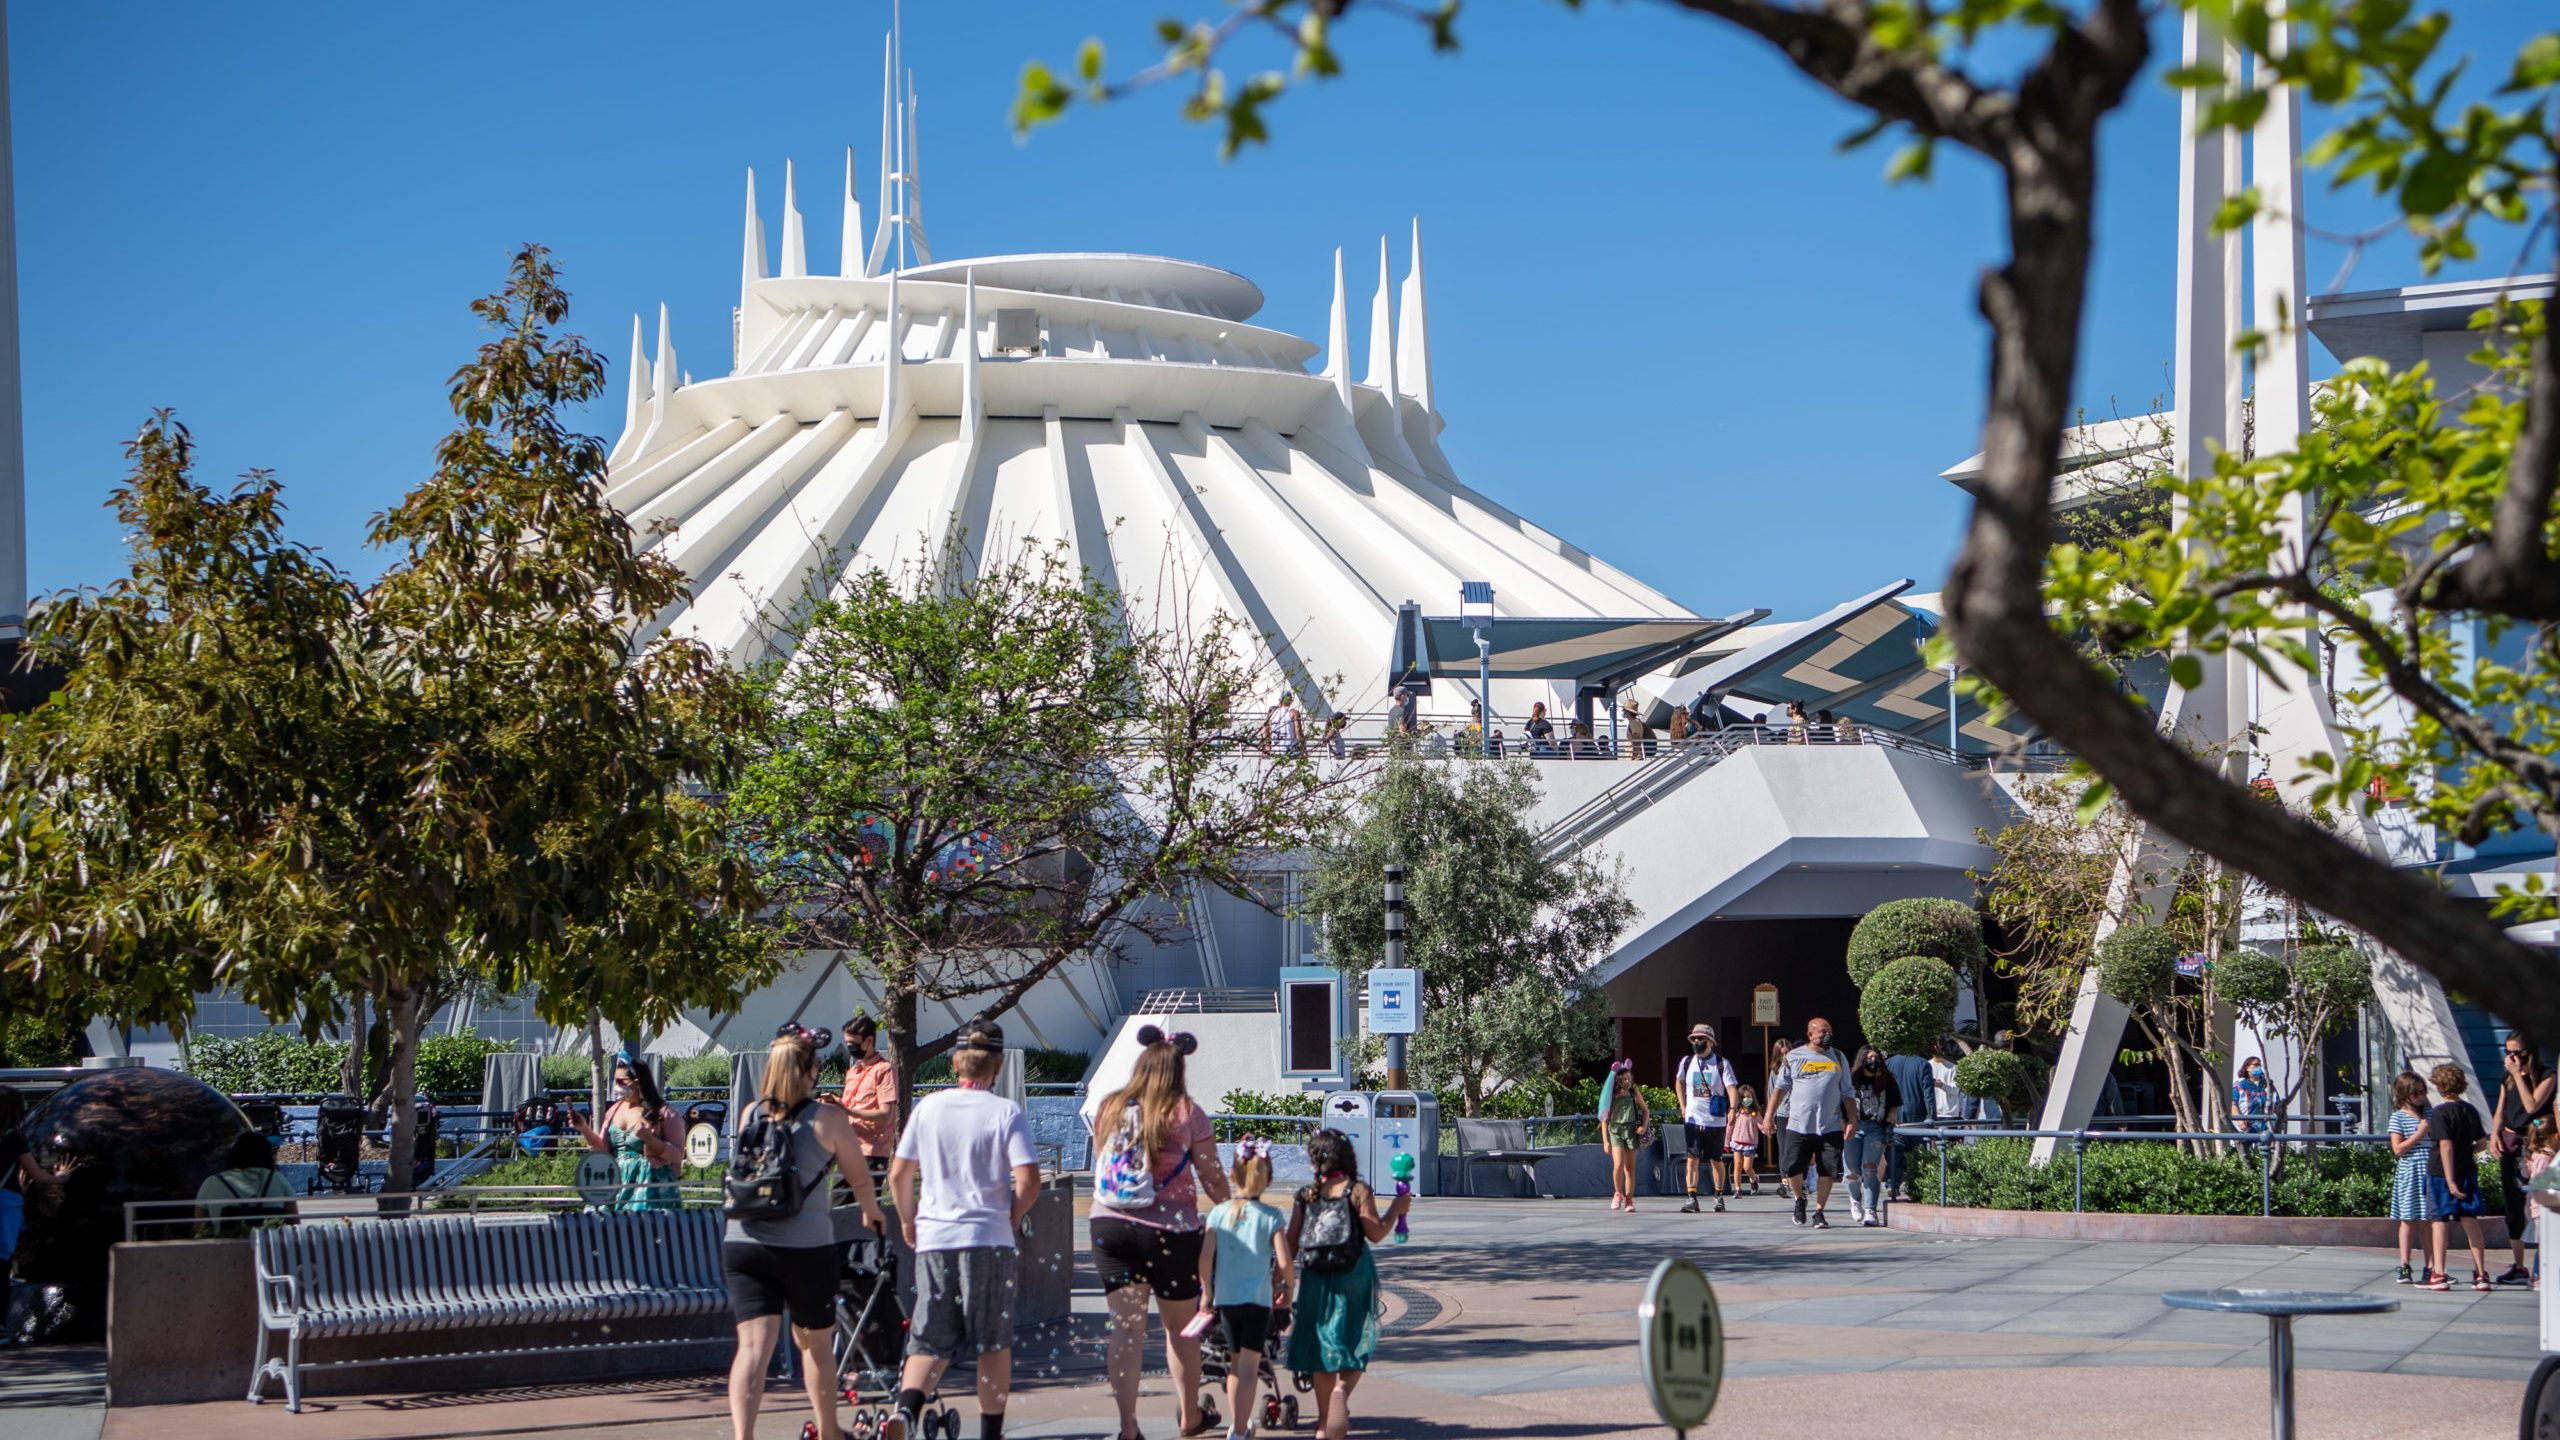 In this handout photo, guests arrive in Tomorrowland at the Disneyland Resort on April 30, 2021, in Anaheim. (Richard Harbaugh/Disneyland Resort via Getty Images)